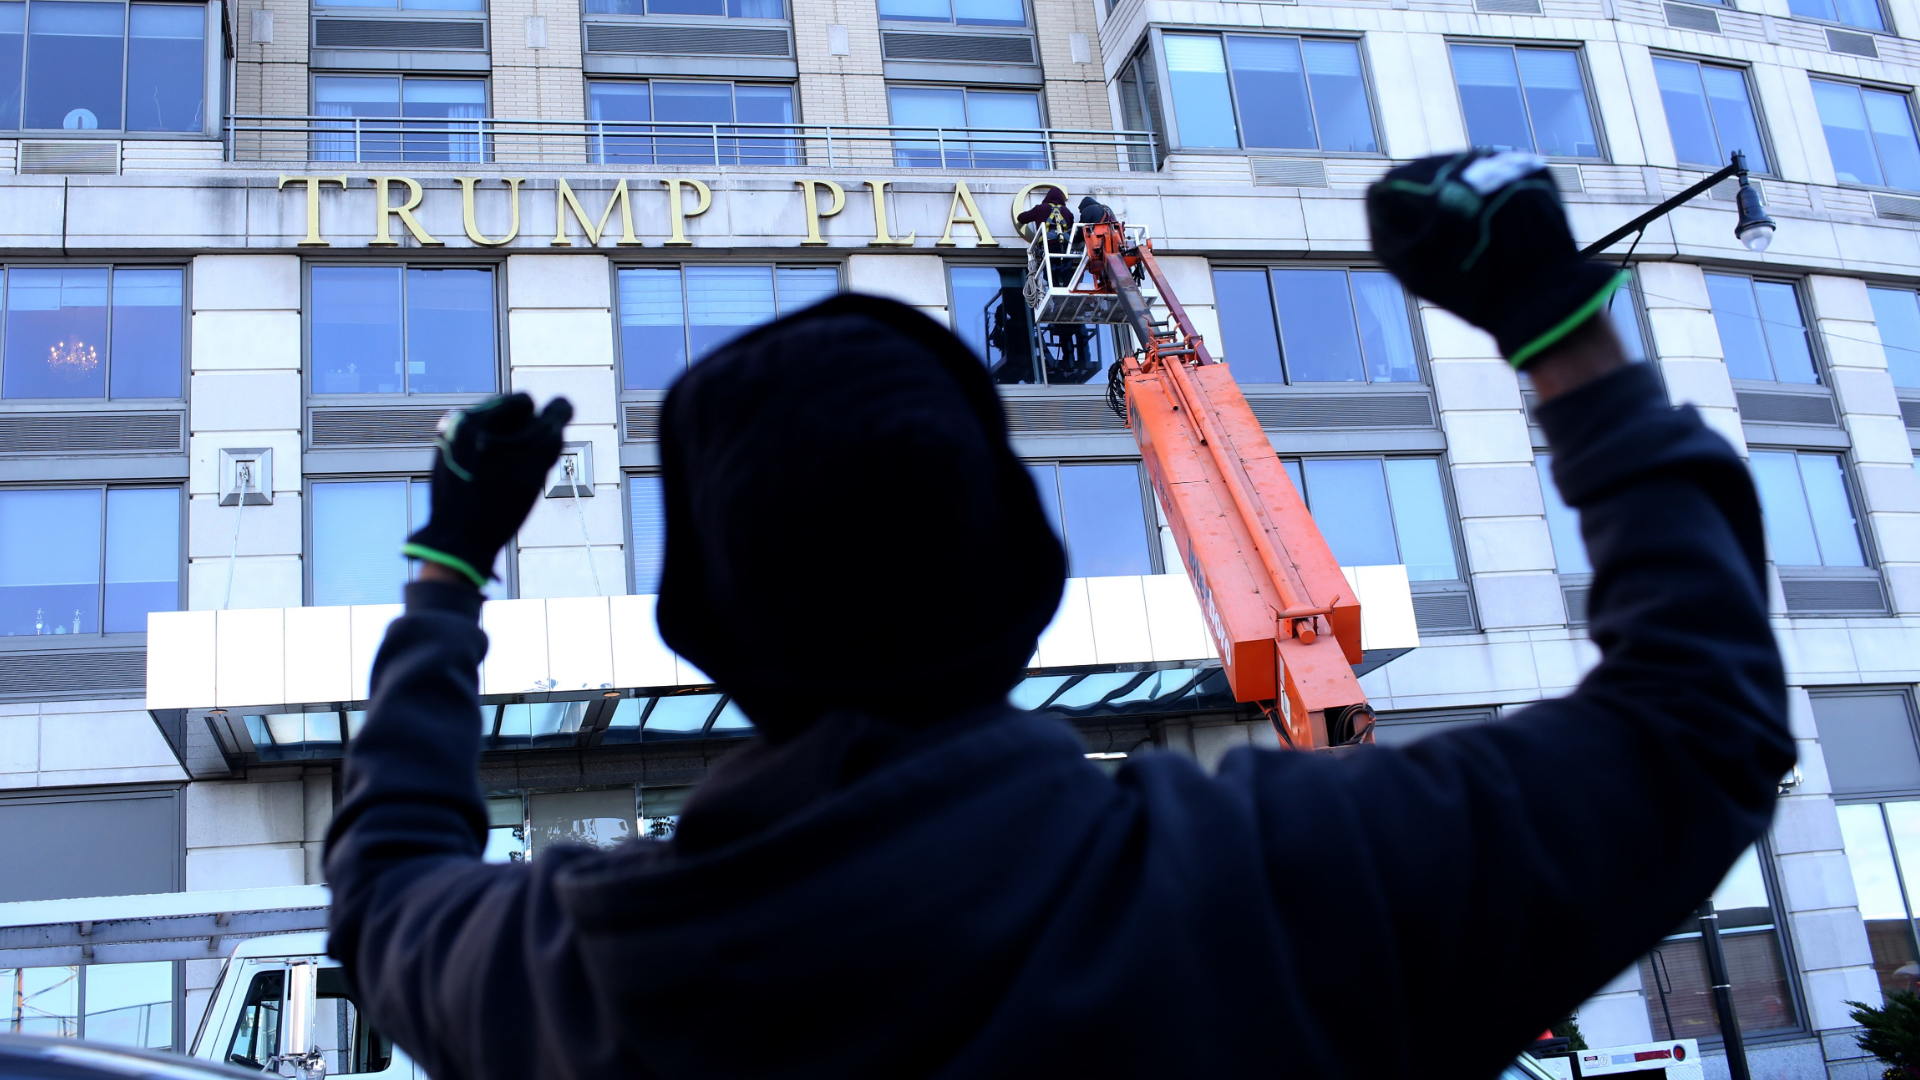 Another Trump-branded building has decided to take down the president's name